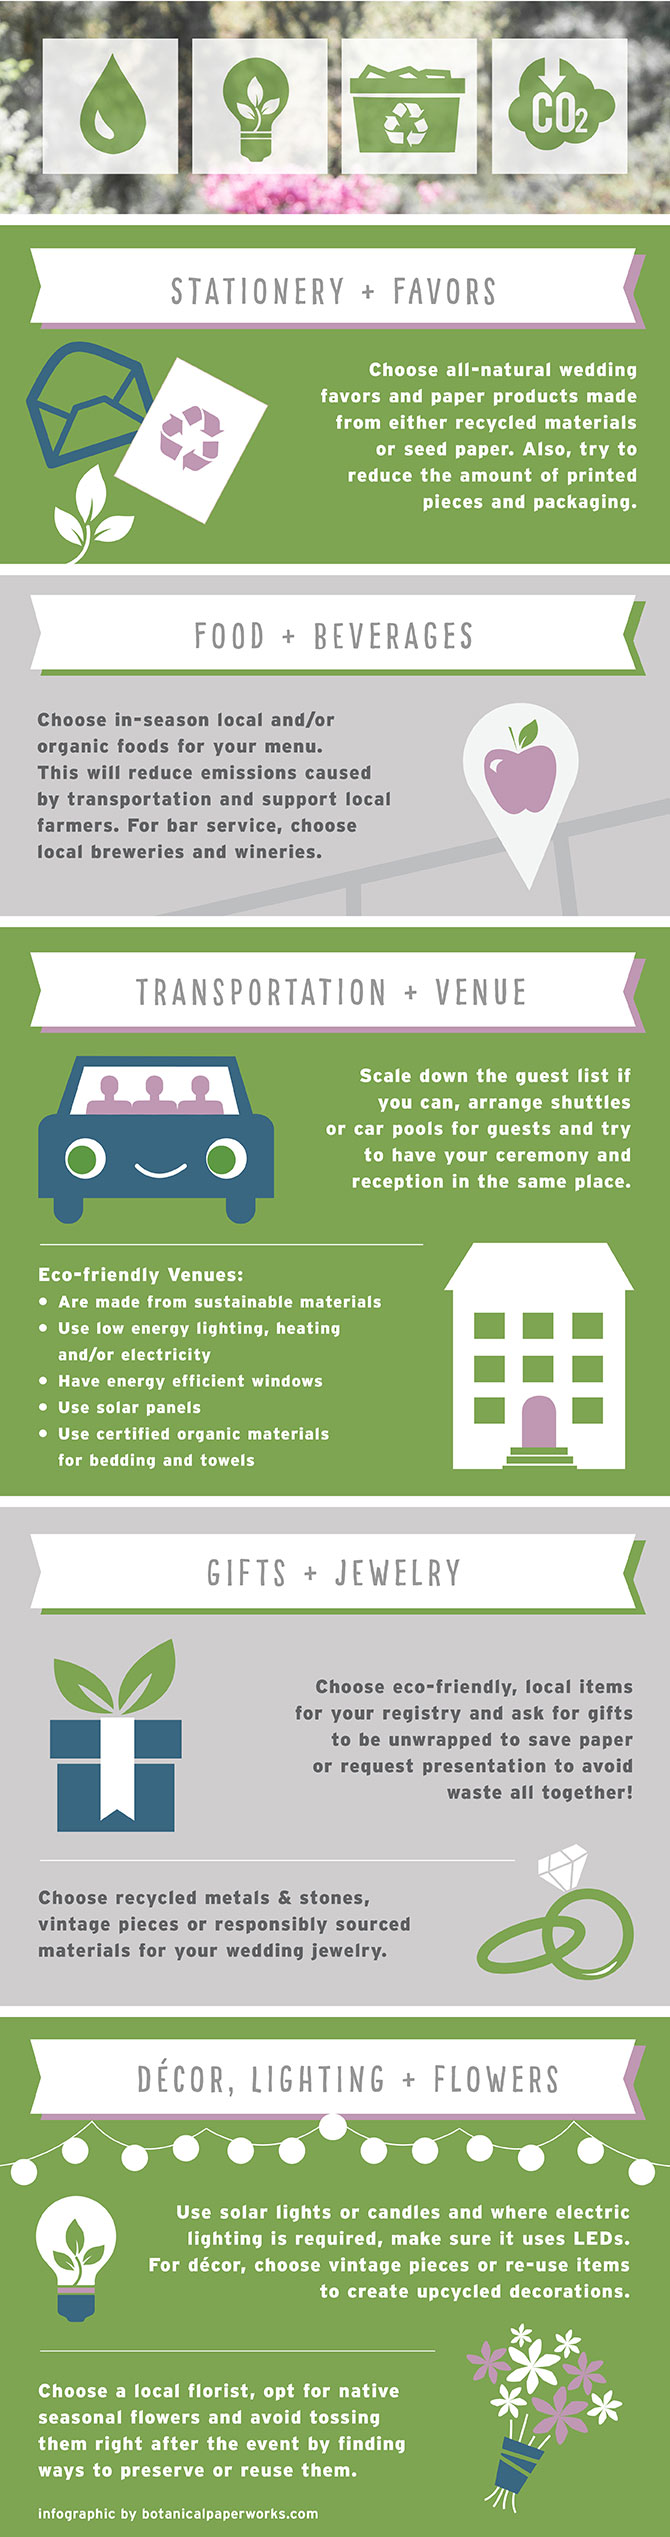 Wedding Industry Waste + Eco-friendly Wedding Tips | Plan an eco-friendly wedding with the facts + expert tips in this helpful infogrpahic. #ecofriendlyweddings #ecofriendly #infographic #bridetobe